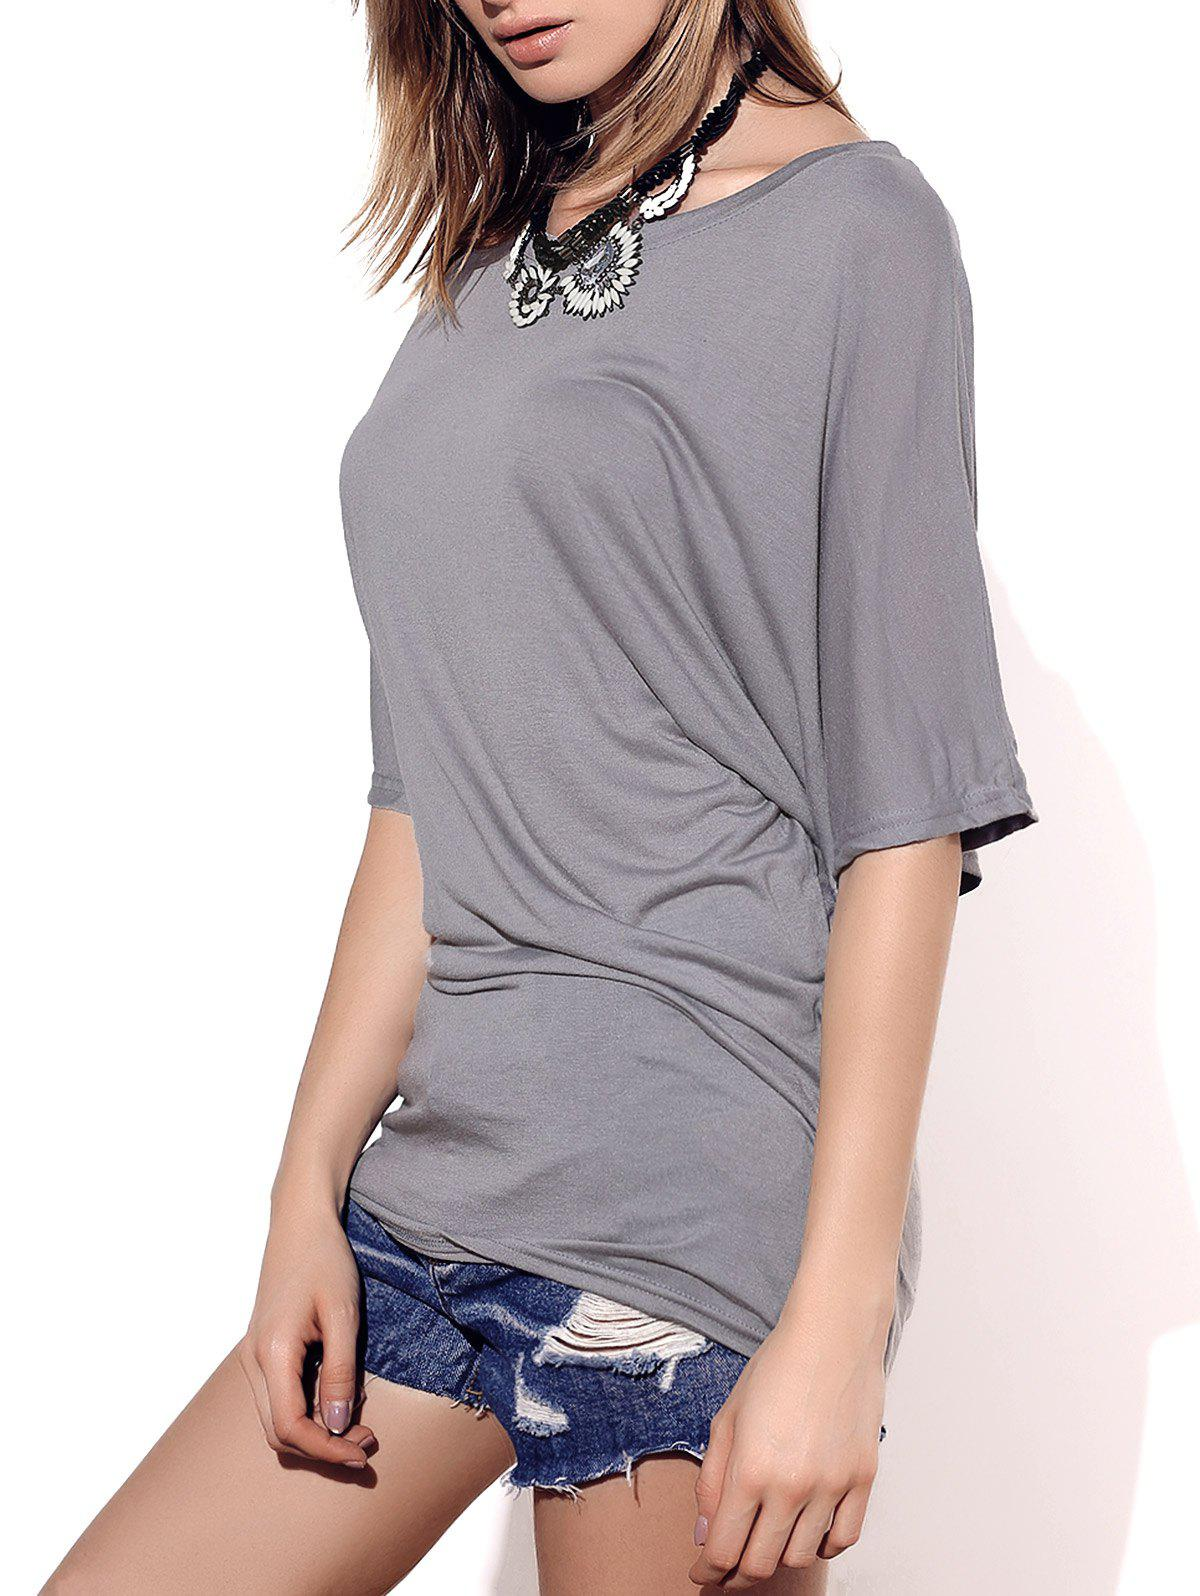 Stylish boat neck short sleeve solid color women 39 s t shirt for Boat neck t shirt women s